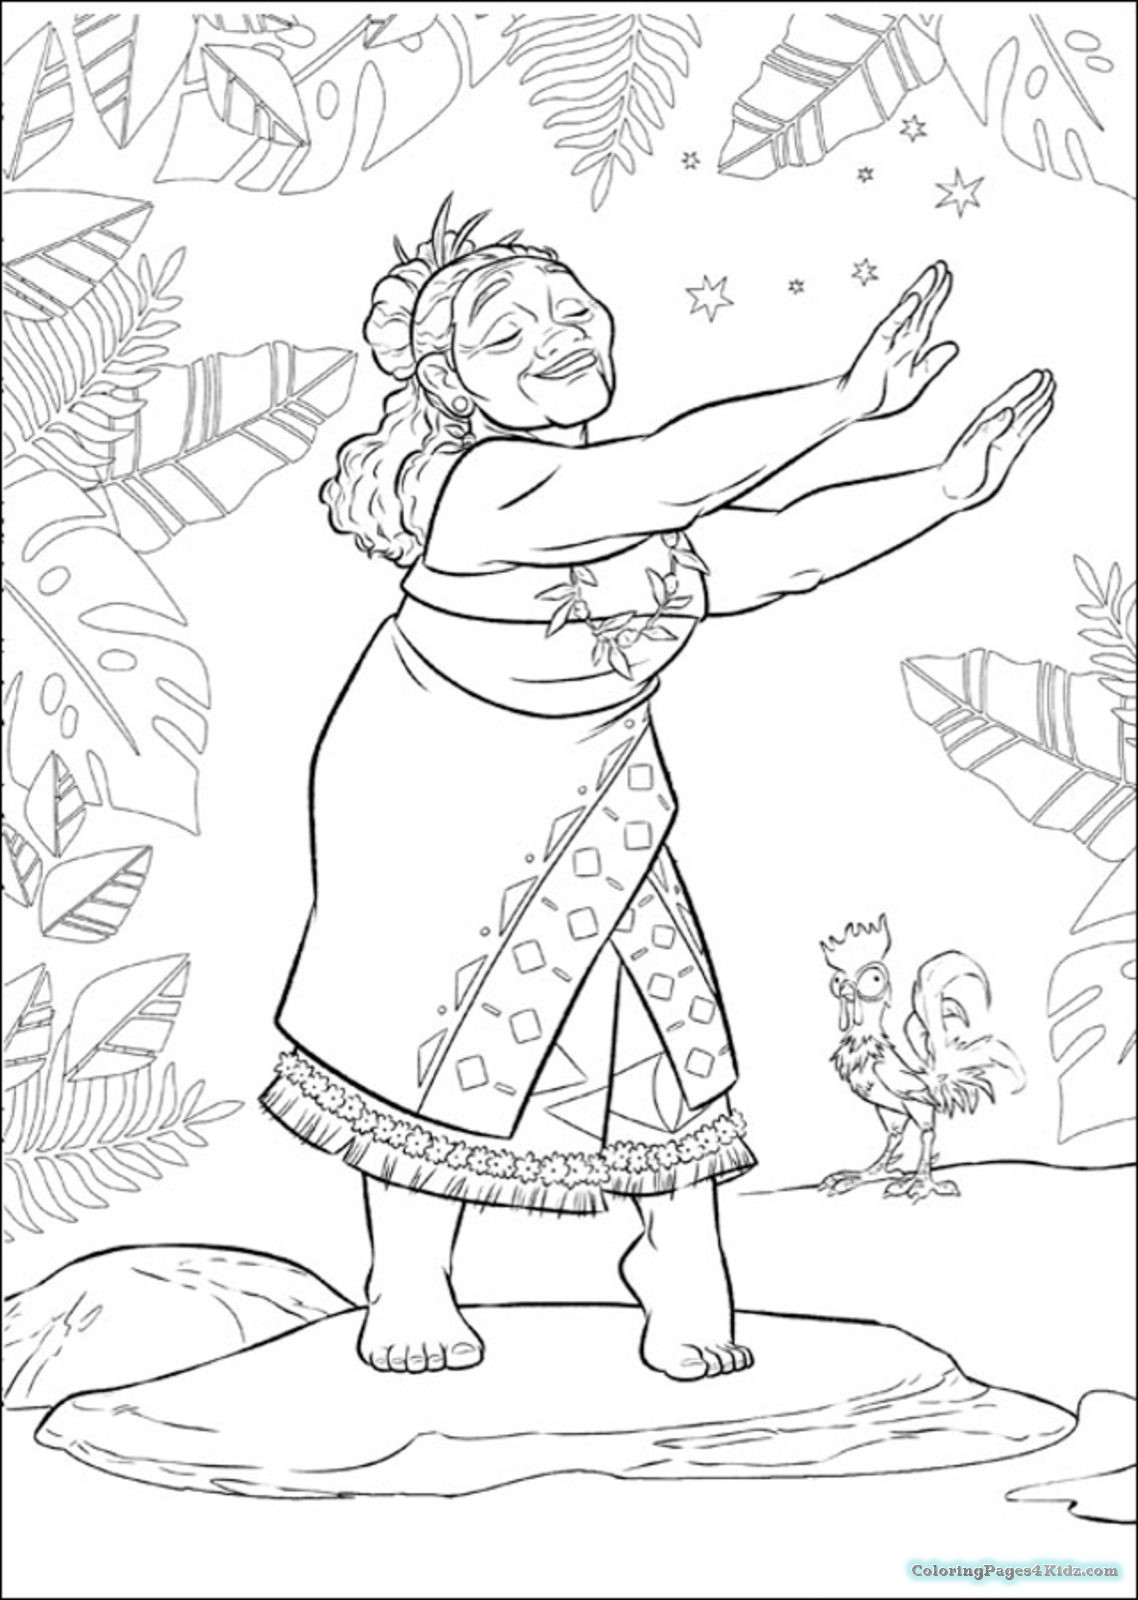 coloring pages for girls moana moana coloring pages to download and print for free coloring for pages moana girls